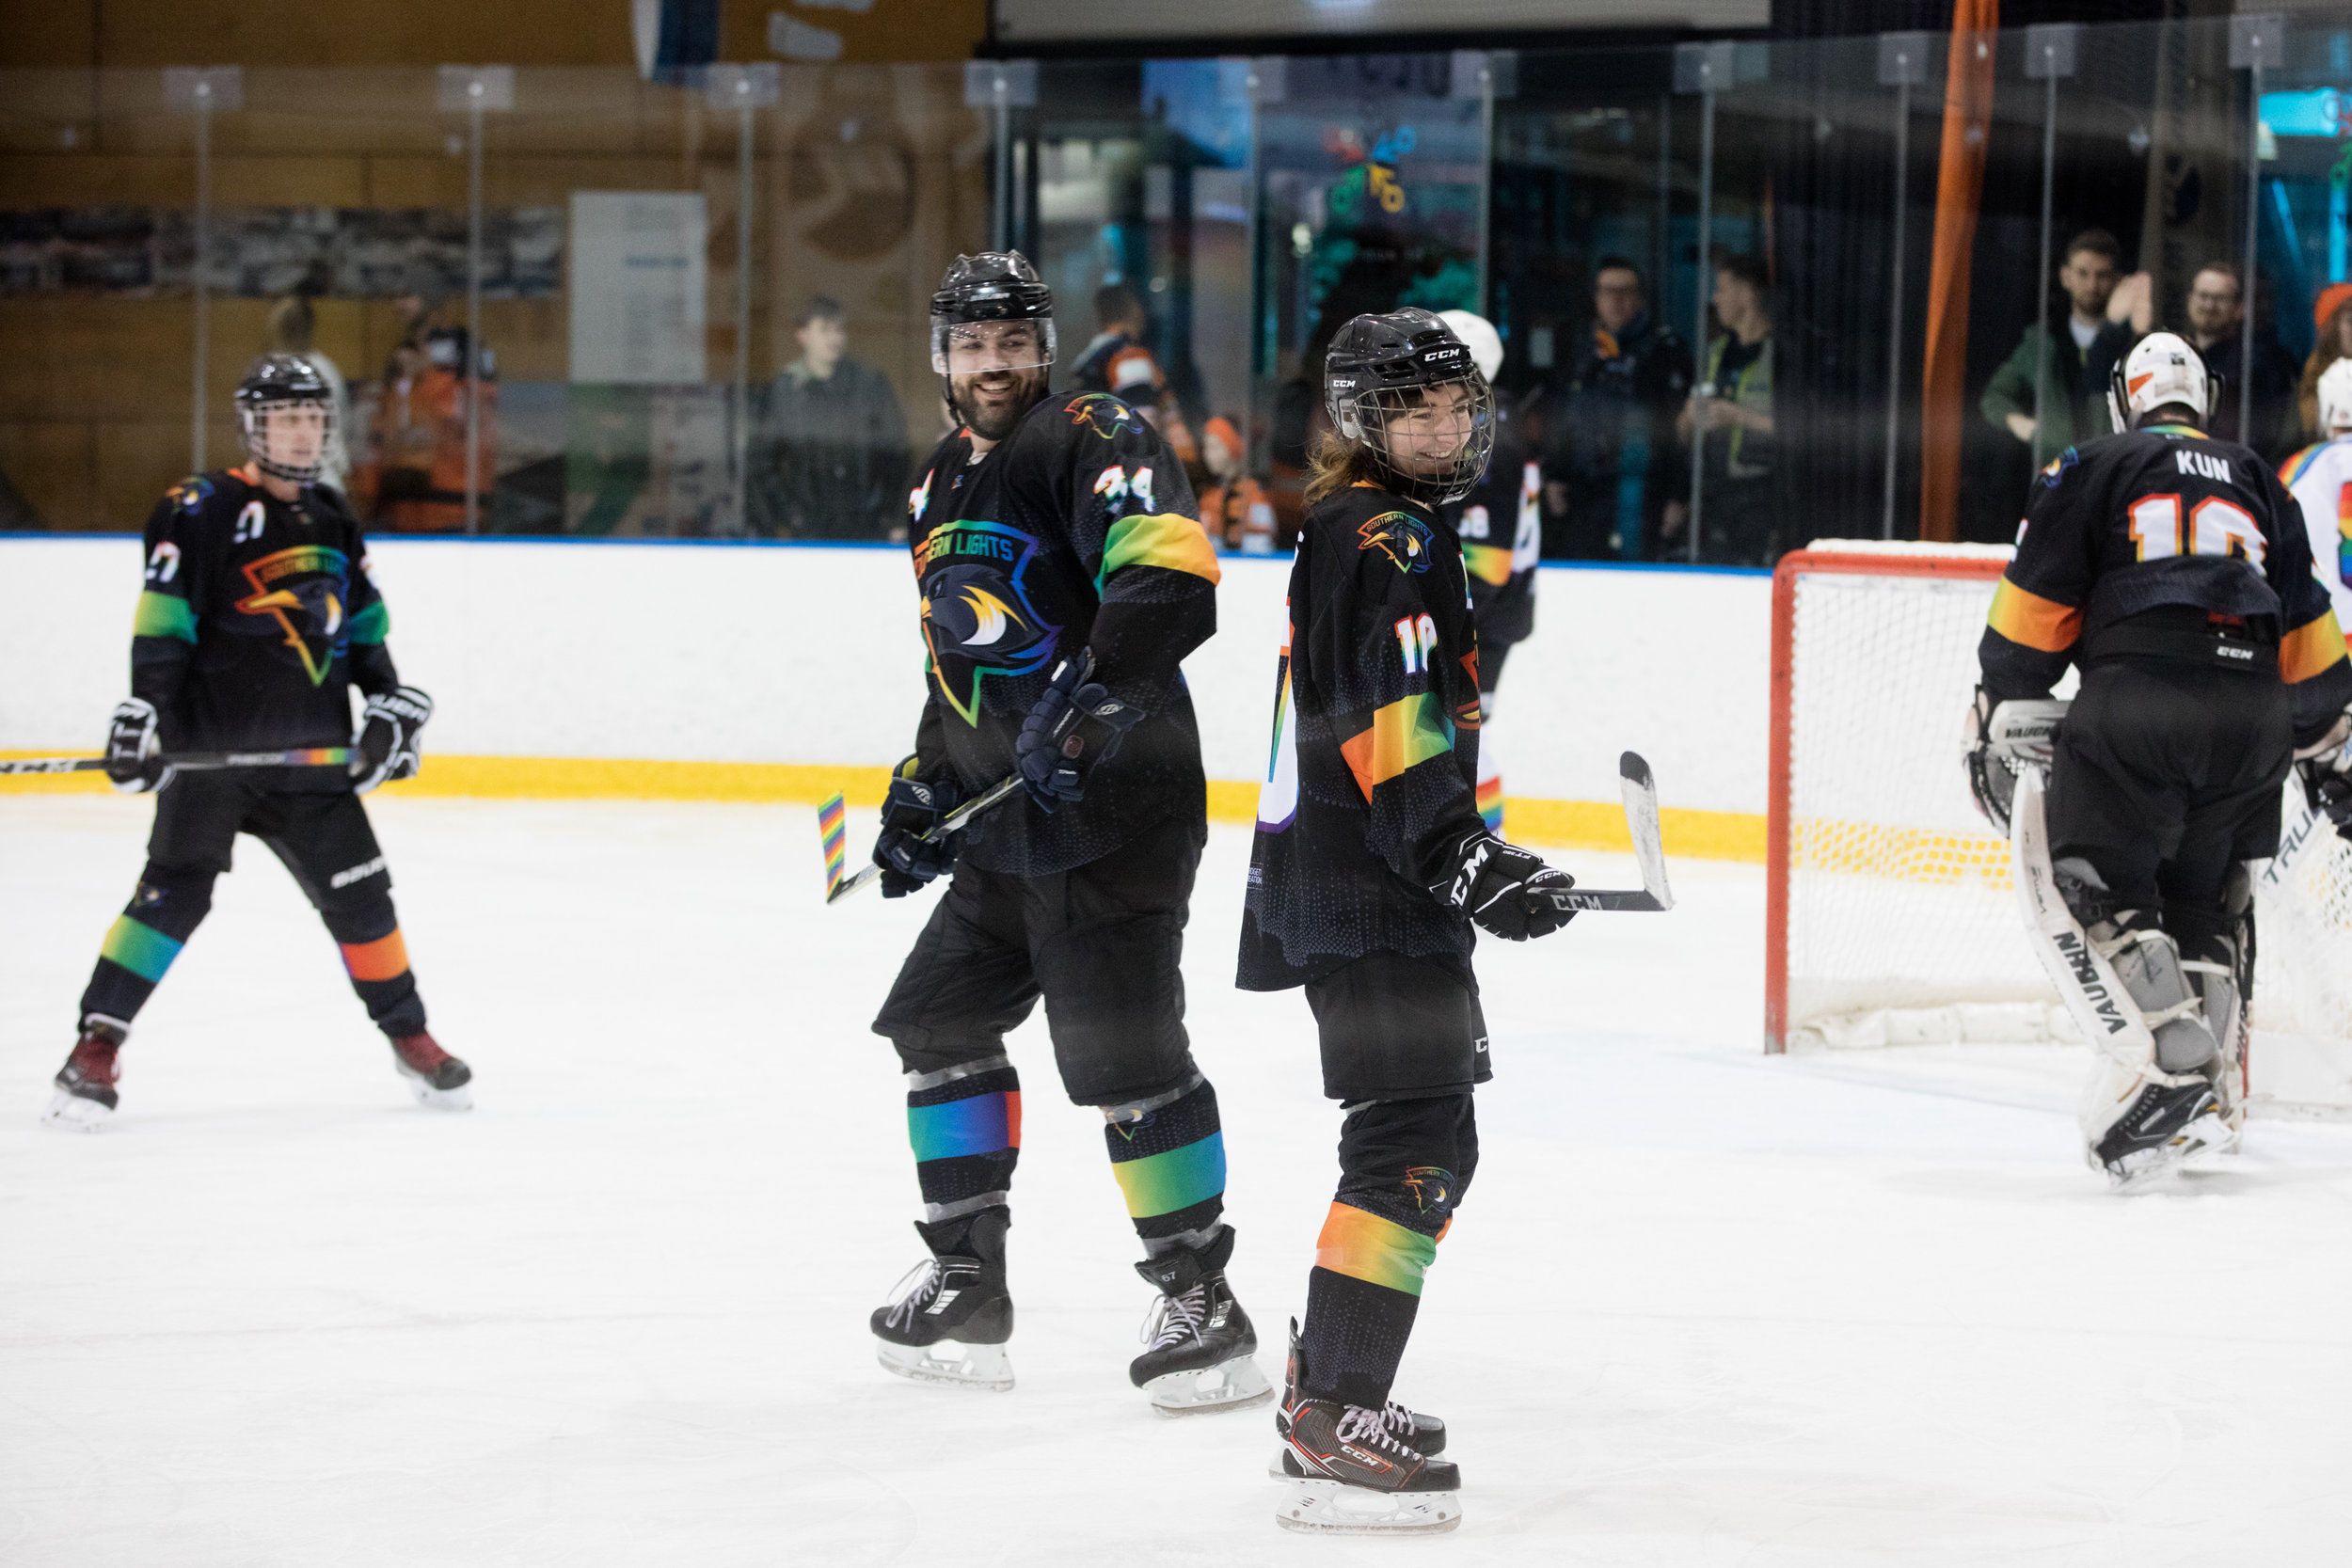 Play for the Southern Lights - Want to get out on the ice and represent the Lights? Let us know!